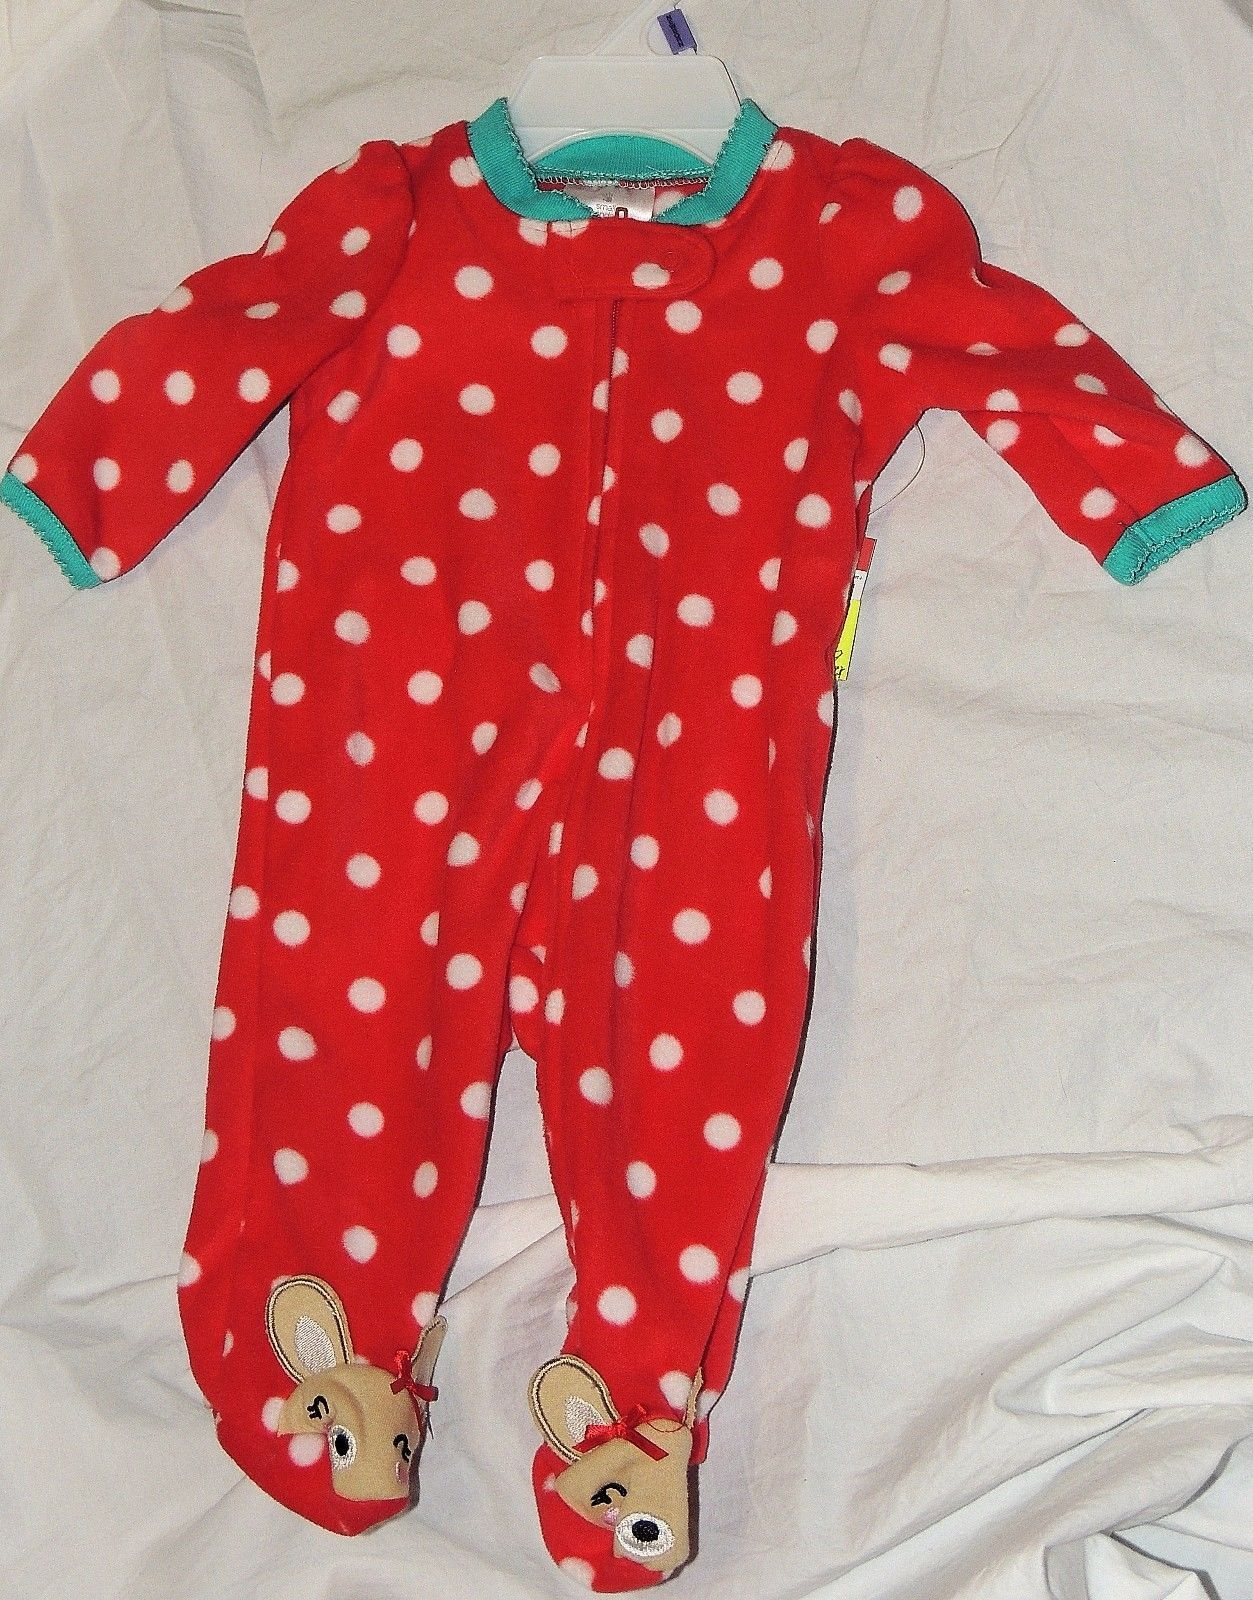 895e76ced1 S l1600. S l1600. Previous. New Baby Girl First Christmas Pajamas w Feet  Newborn Reindeer Rudolph Clarice